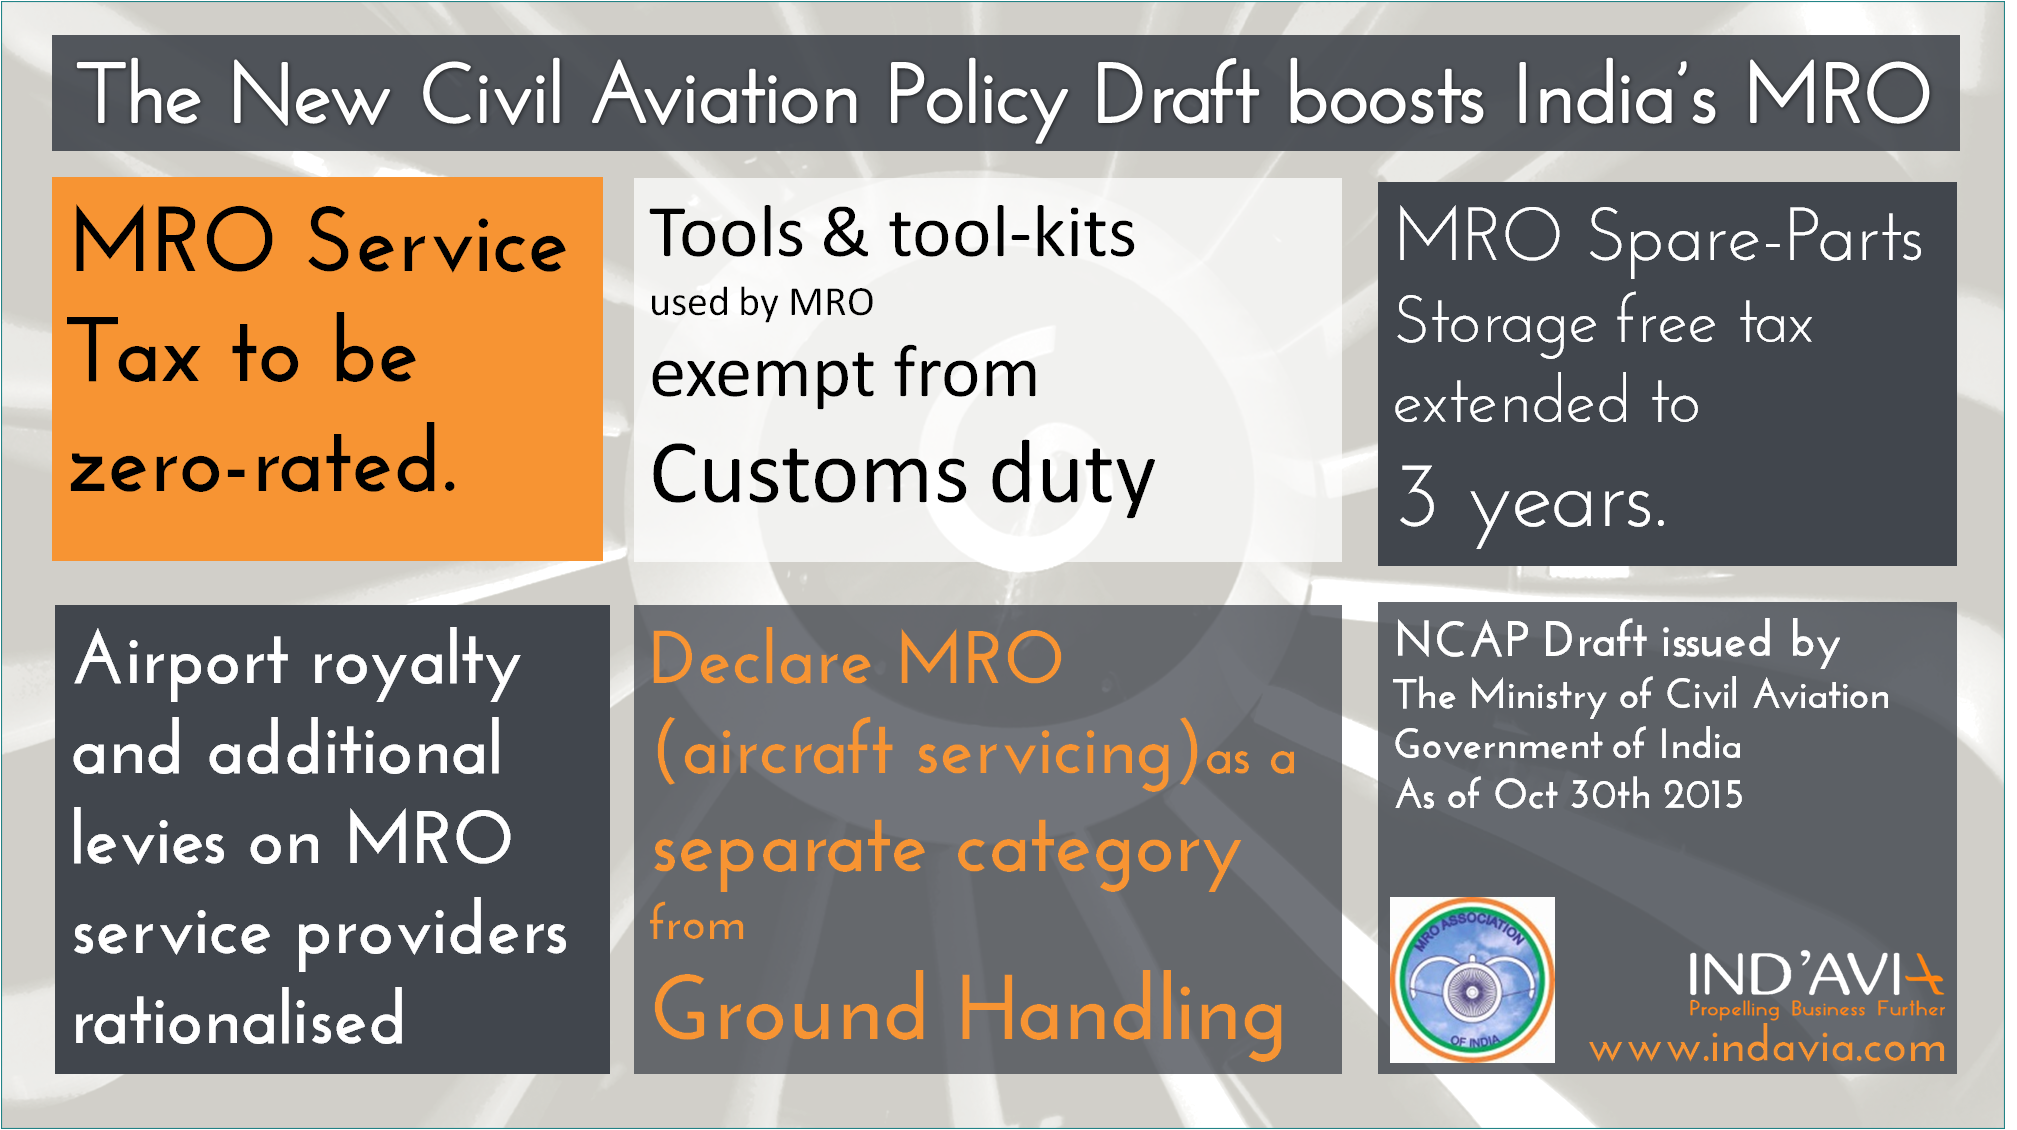 India's new civil aviation policy  and its MRO boosting measures October 30th 2015